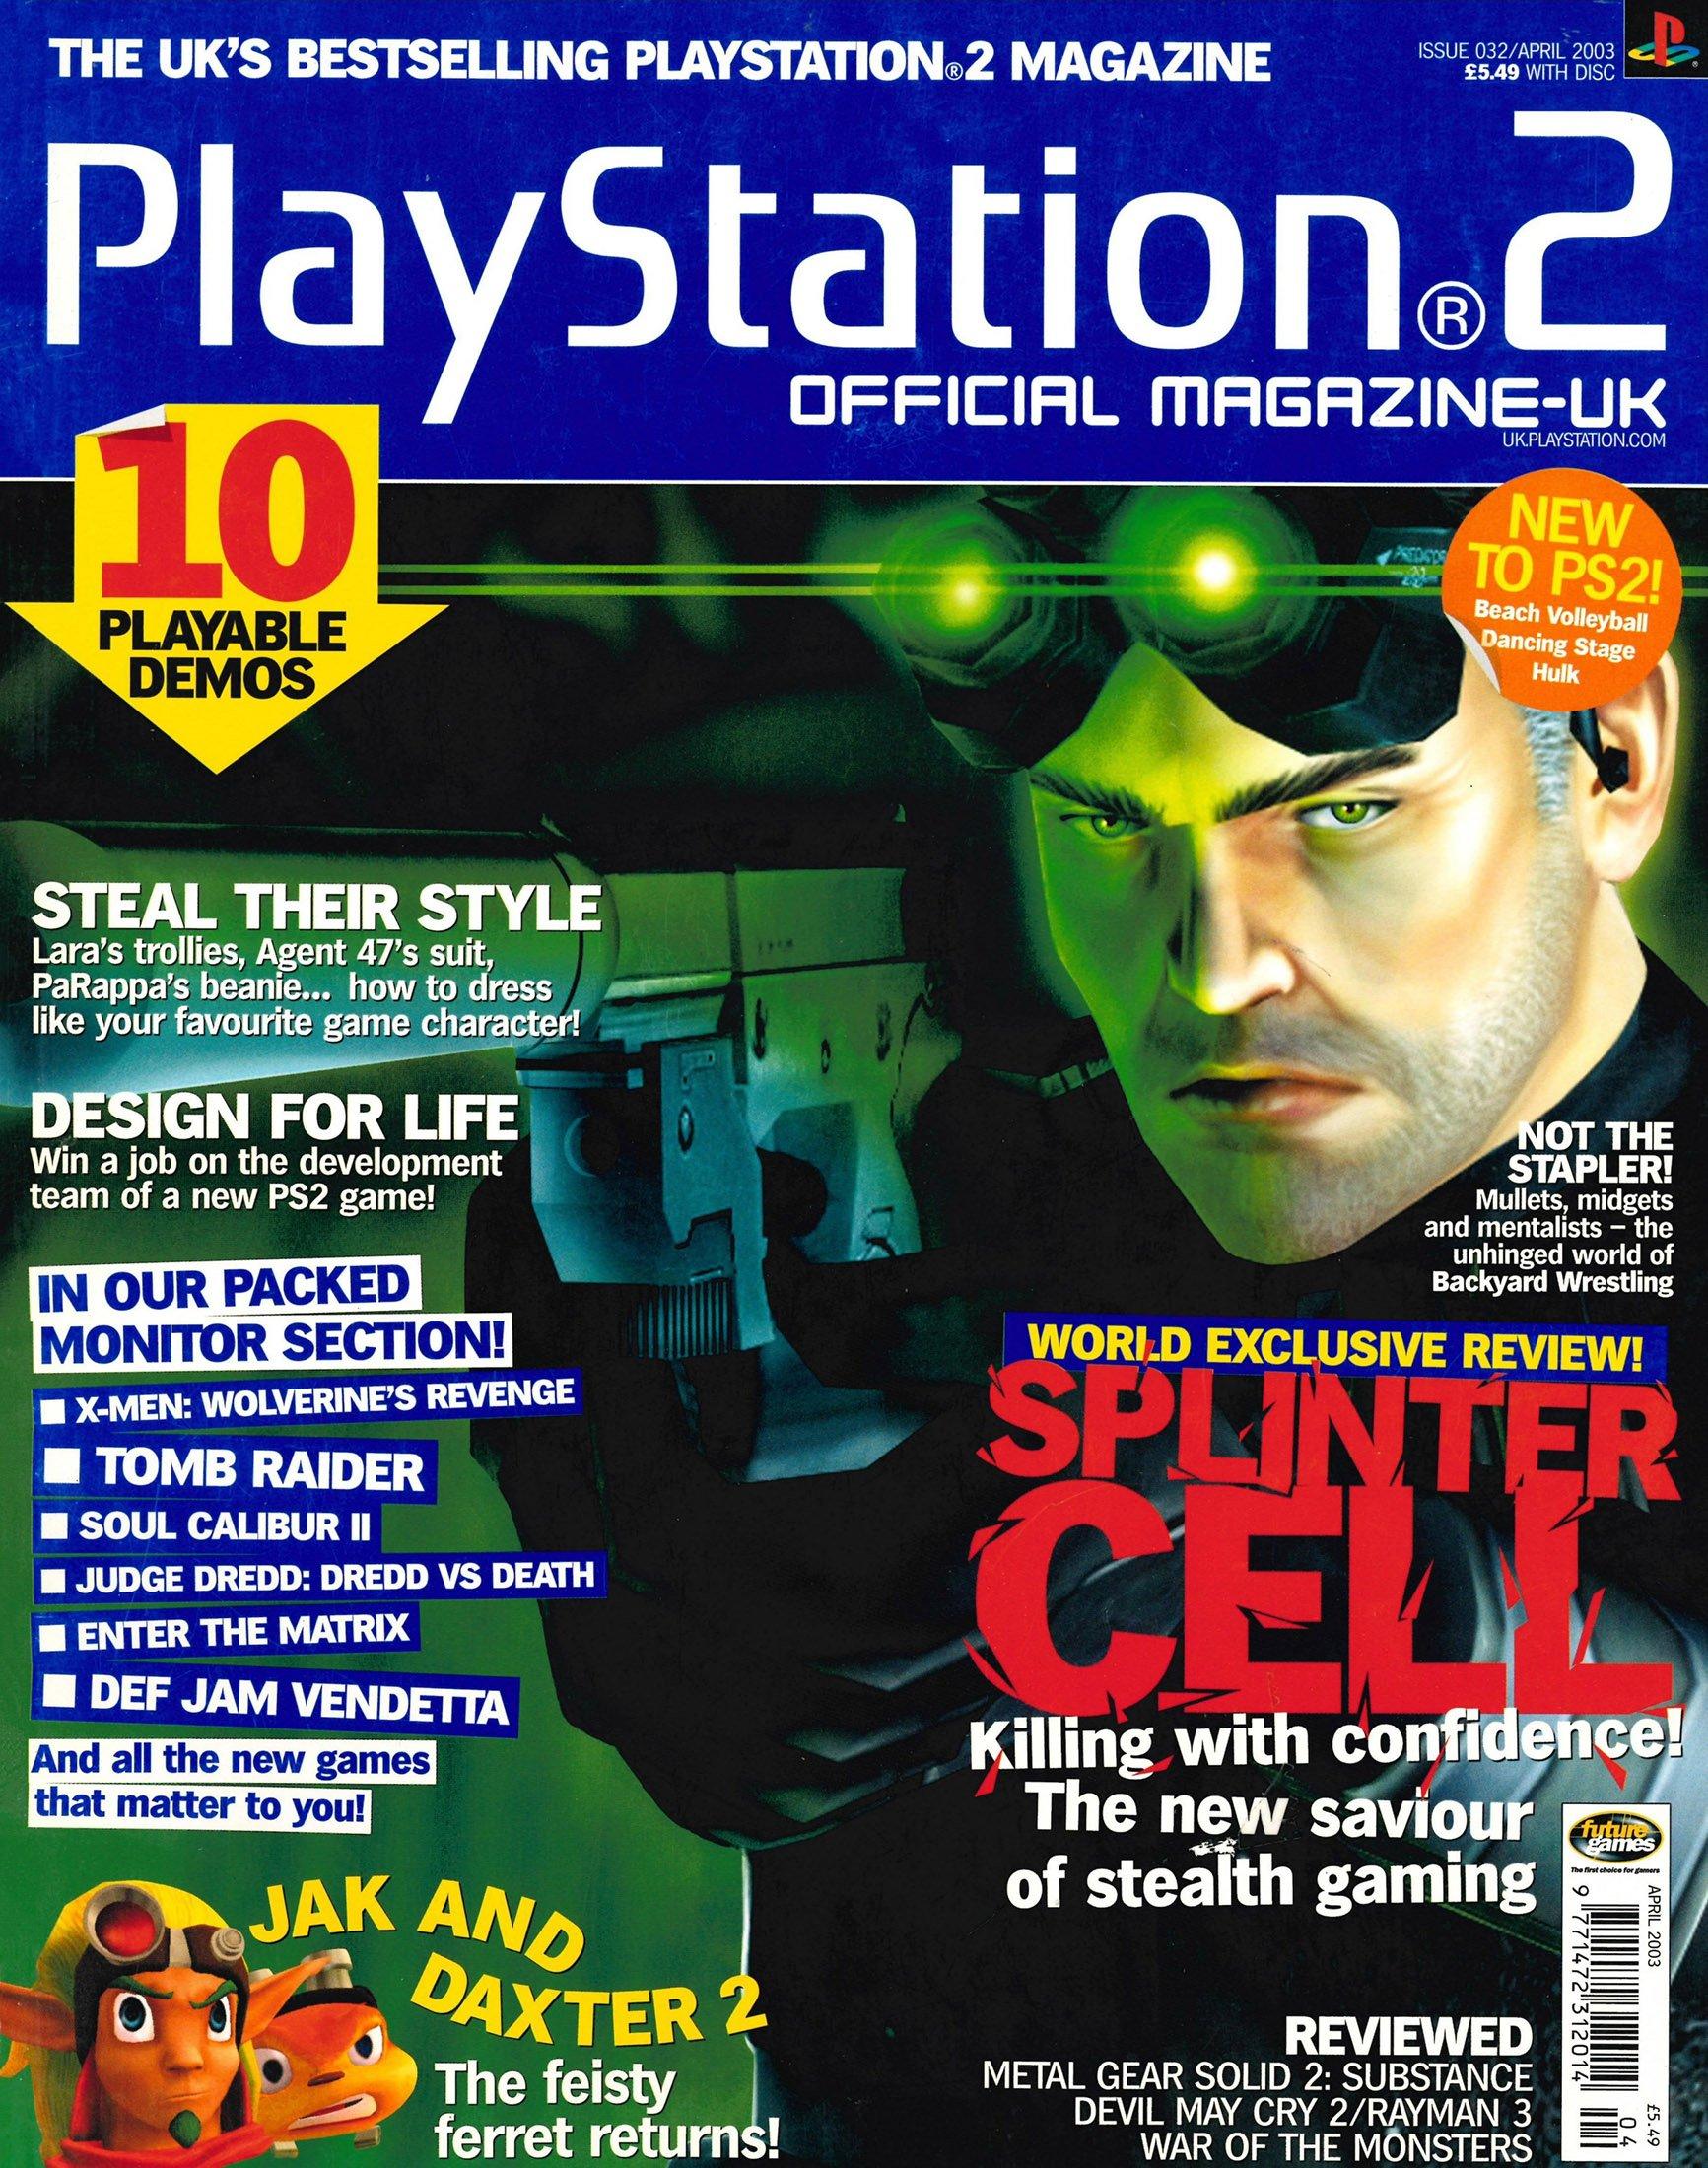 Official Playstation 2 Magazine UK 032 (April 2003)